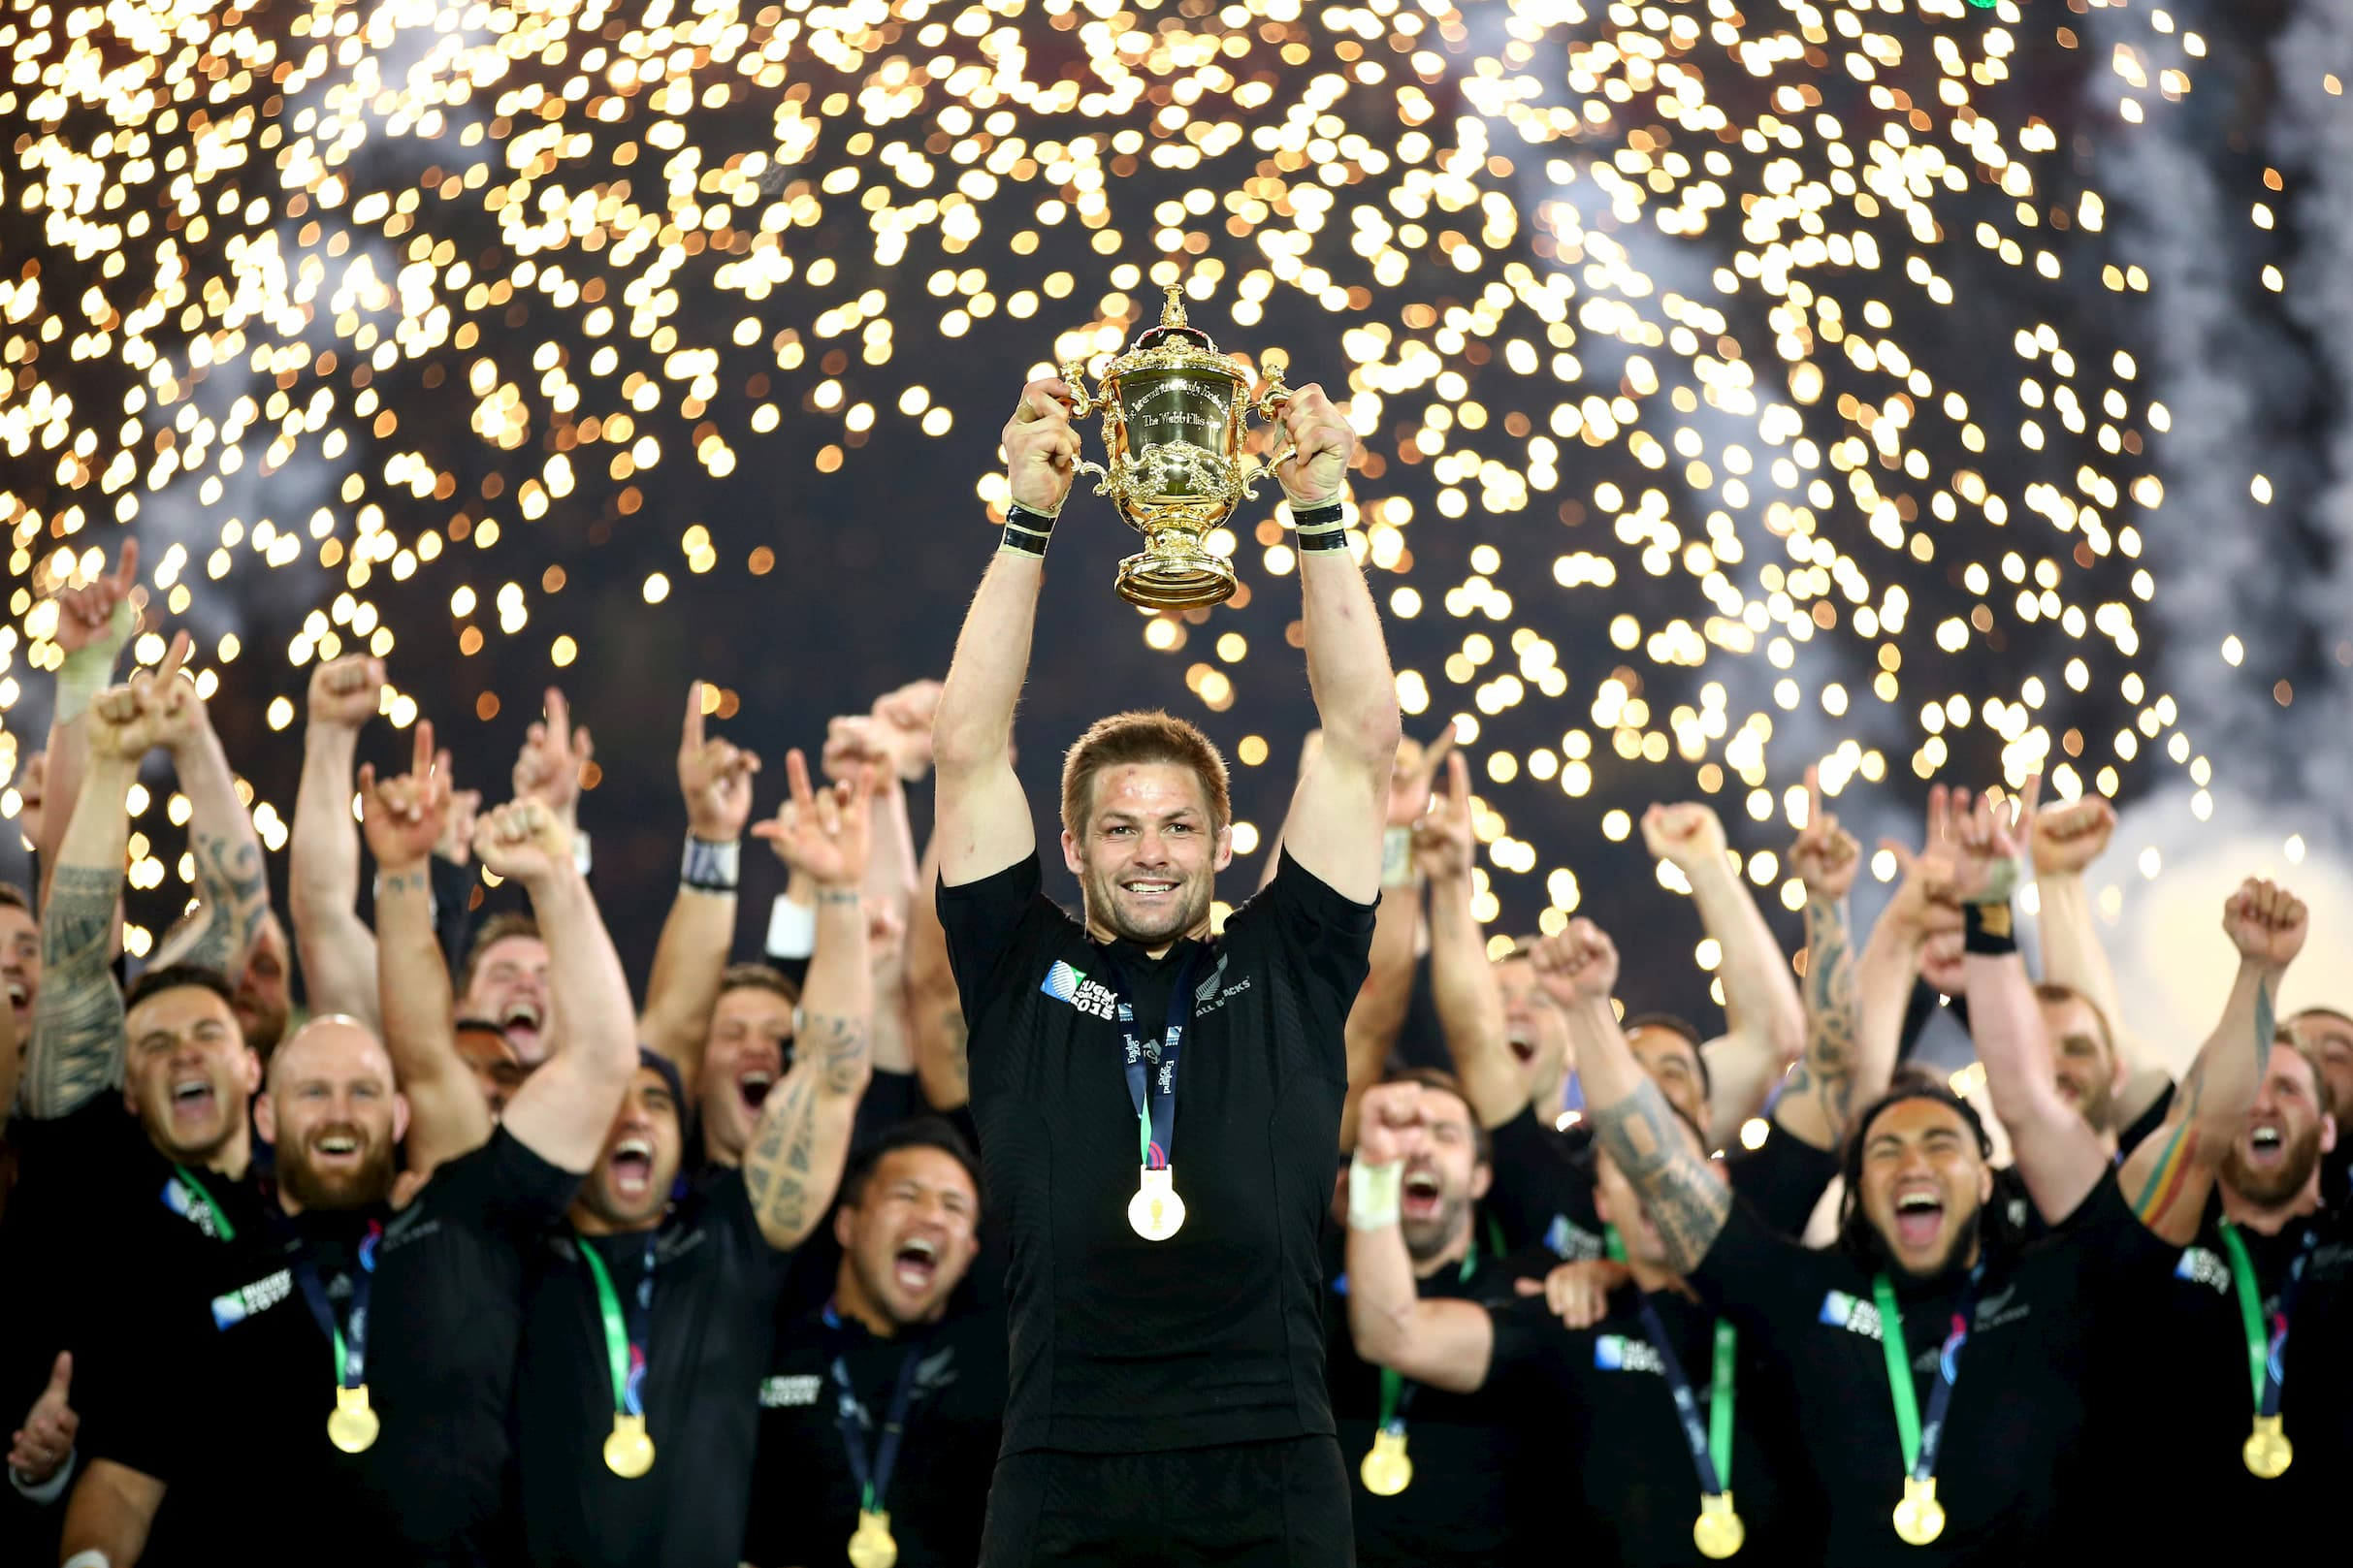 1 Lifting the Webb Ellis Cup Australia v New Zealand RWC 2015 Final London October 31 2015